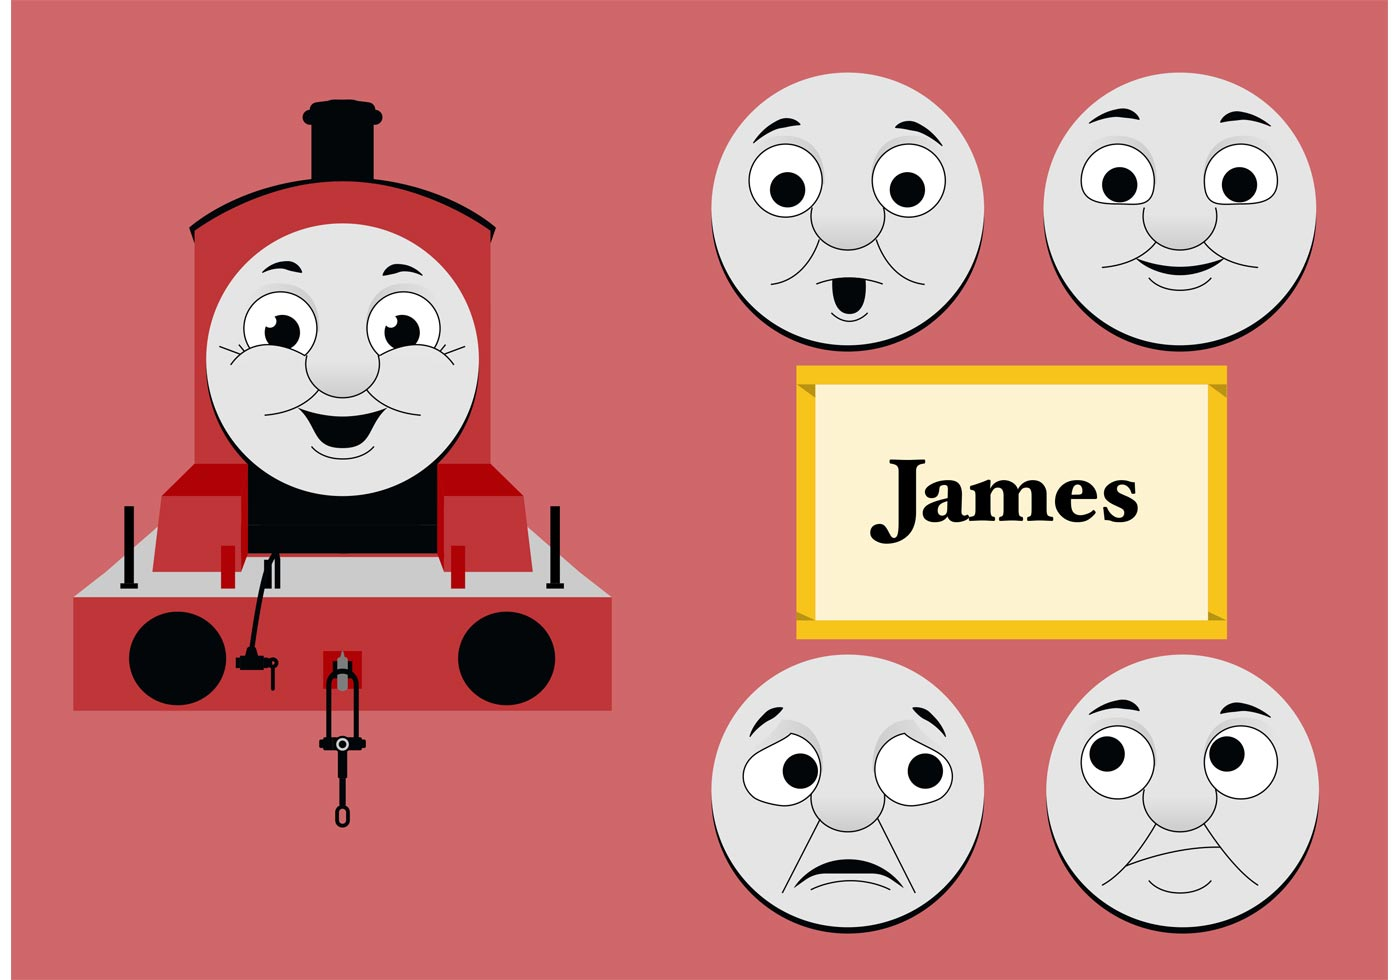 James from thomas the tank engine free vector download for Thomas the tank engine face template